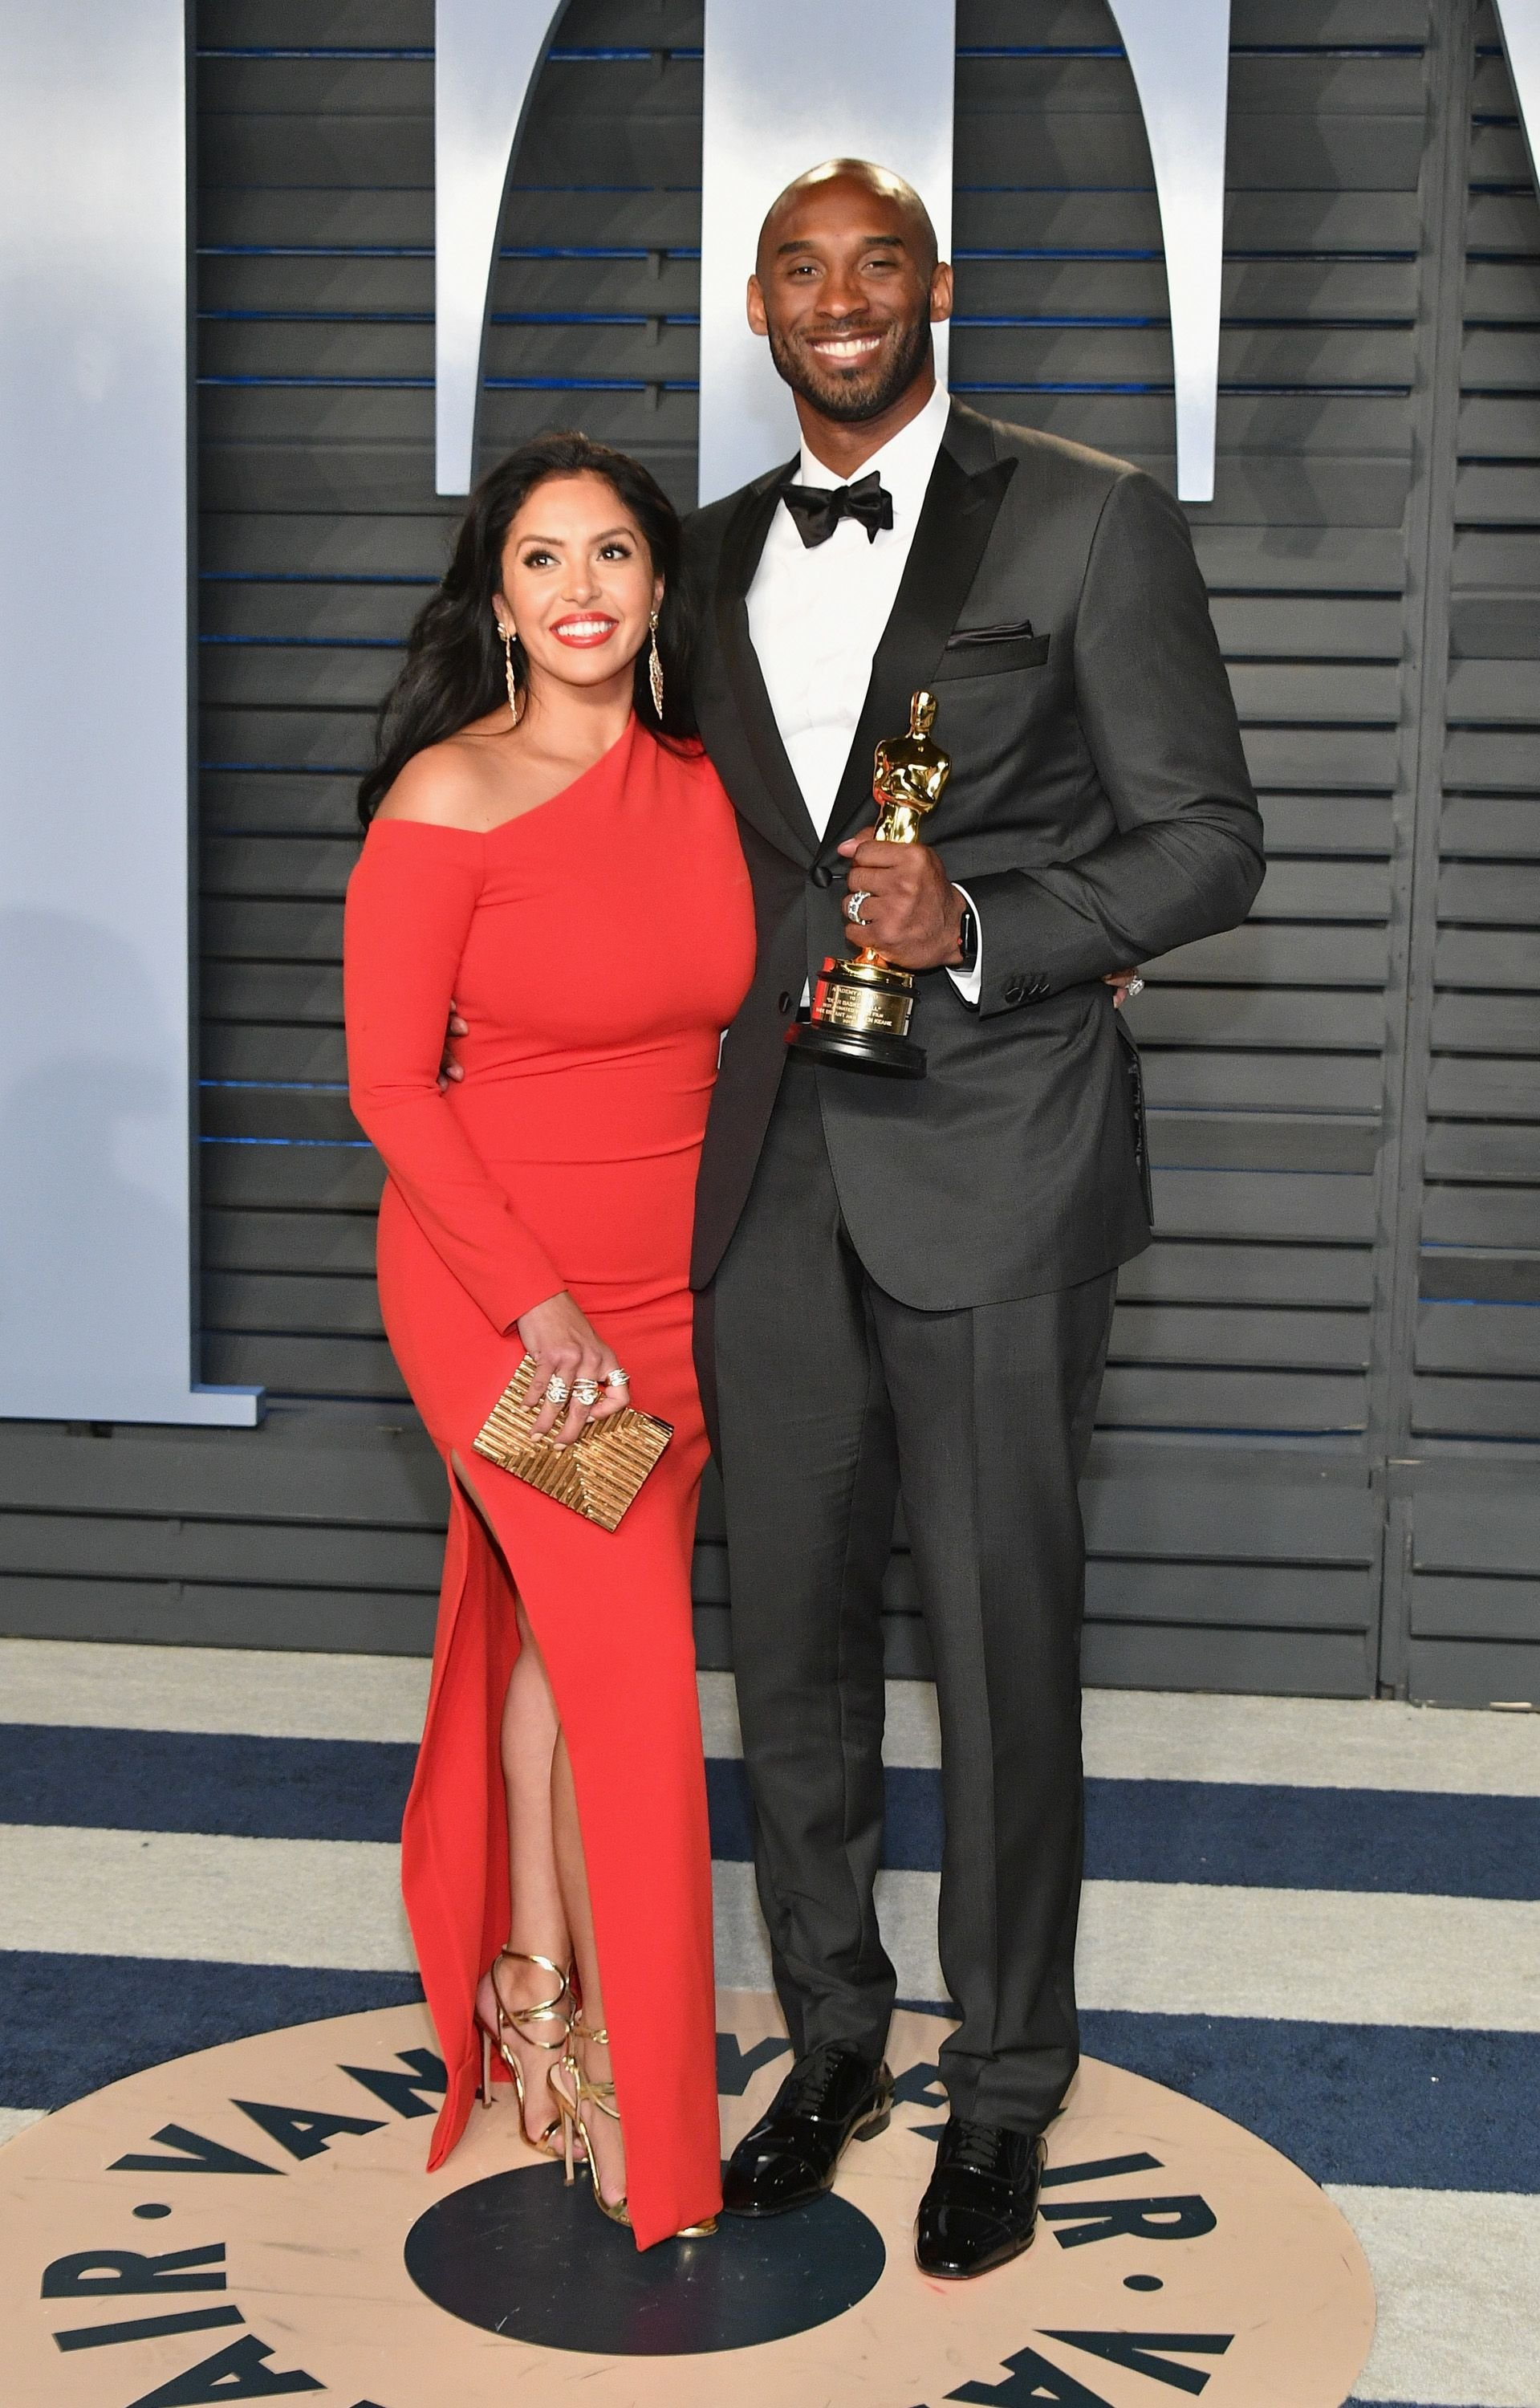 Vanessa Bryant and Kobe Bryant at the 2018 Vanity Fair Oscar Party hosted by Radhika Jones at Wallis Annenberg Center for the Performing Arts on March 4, 2018 | Photo: Getty Images